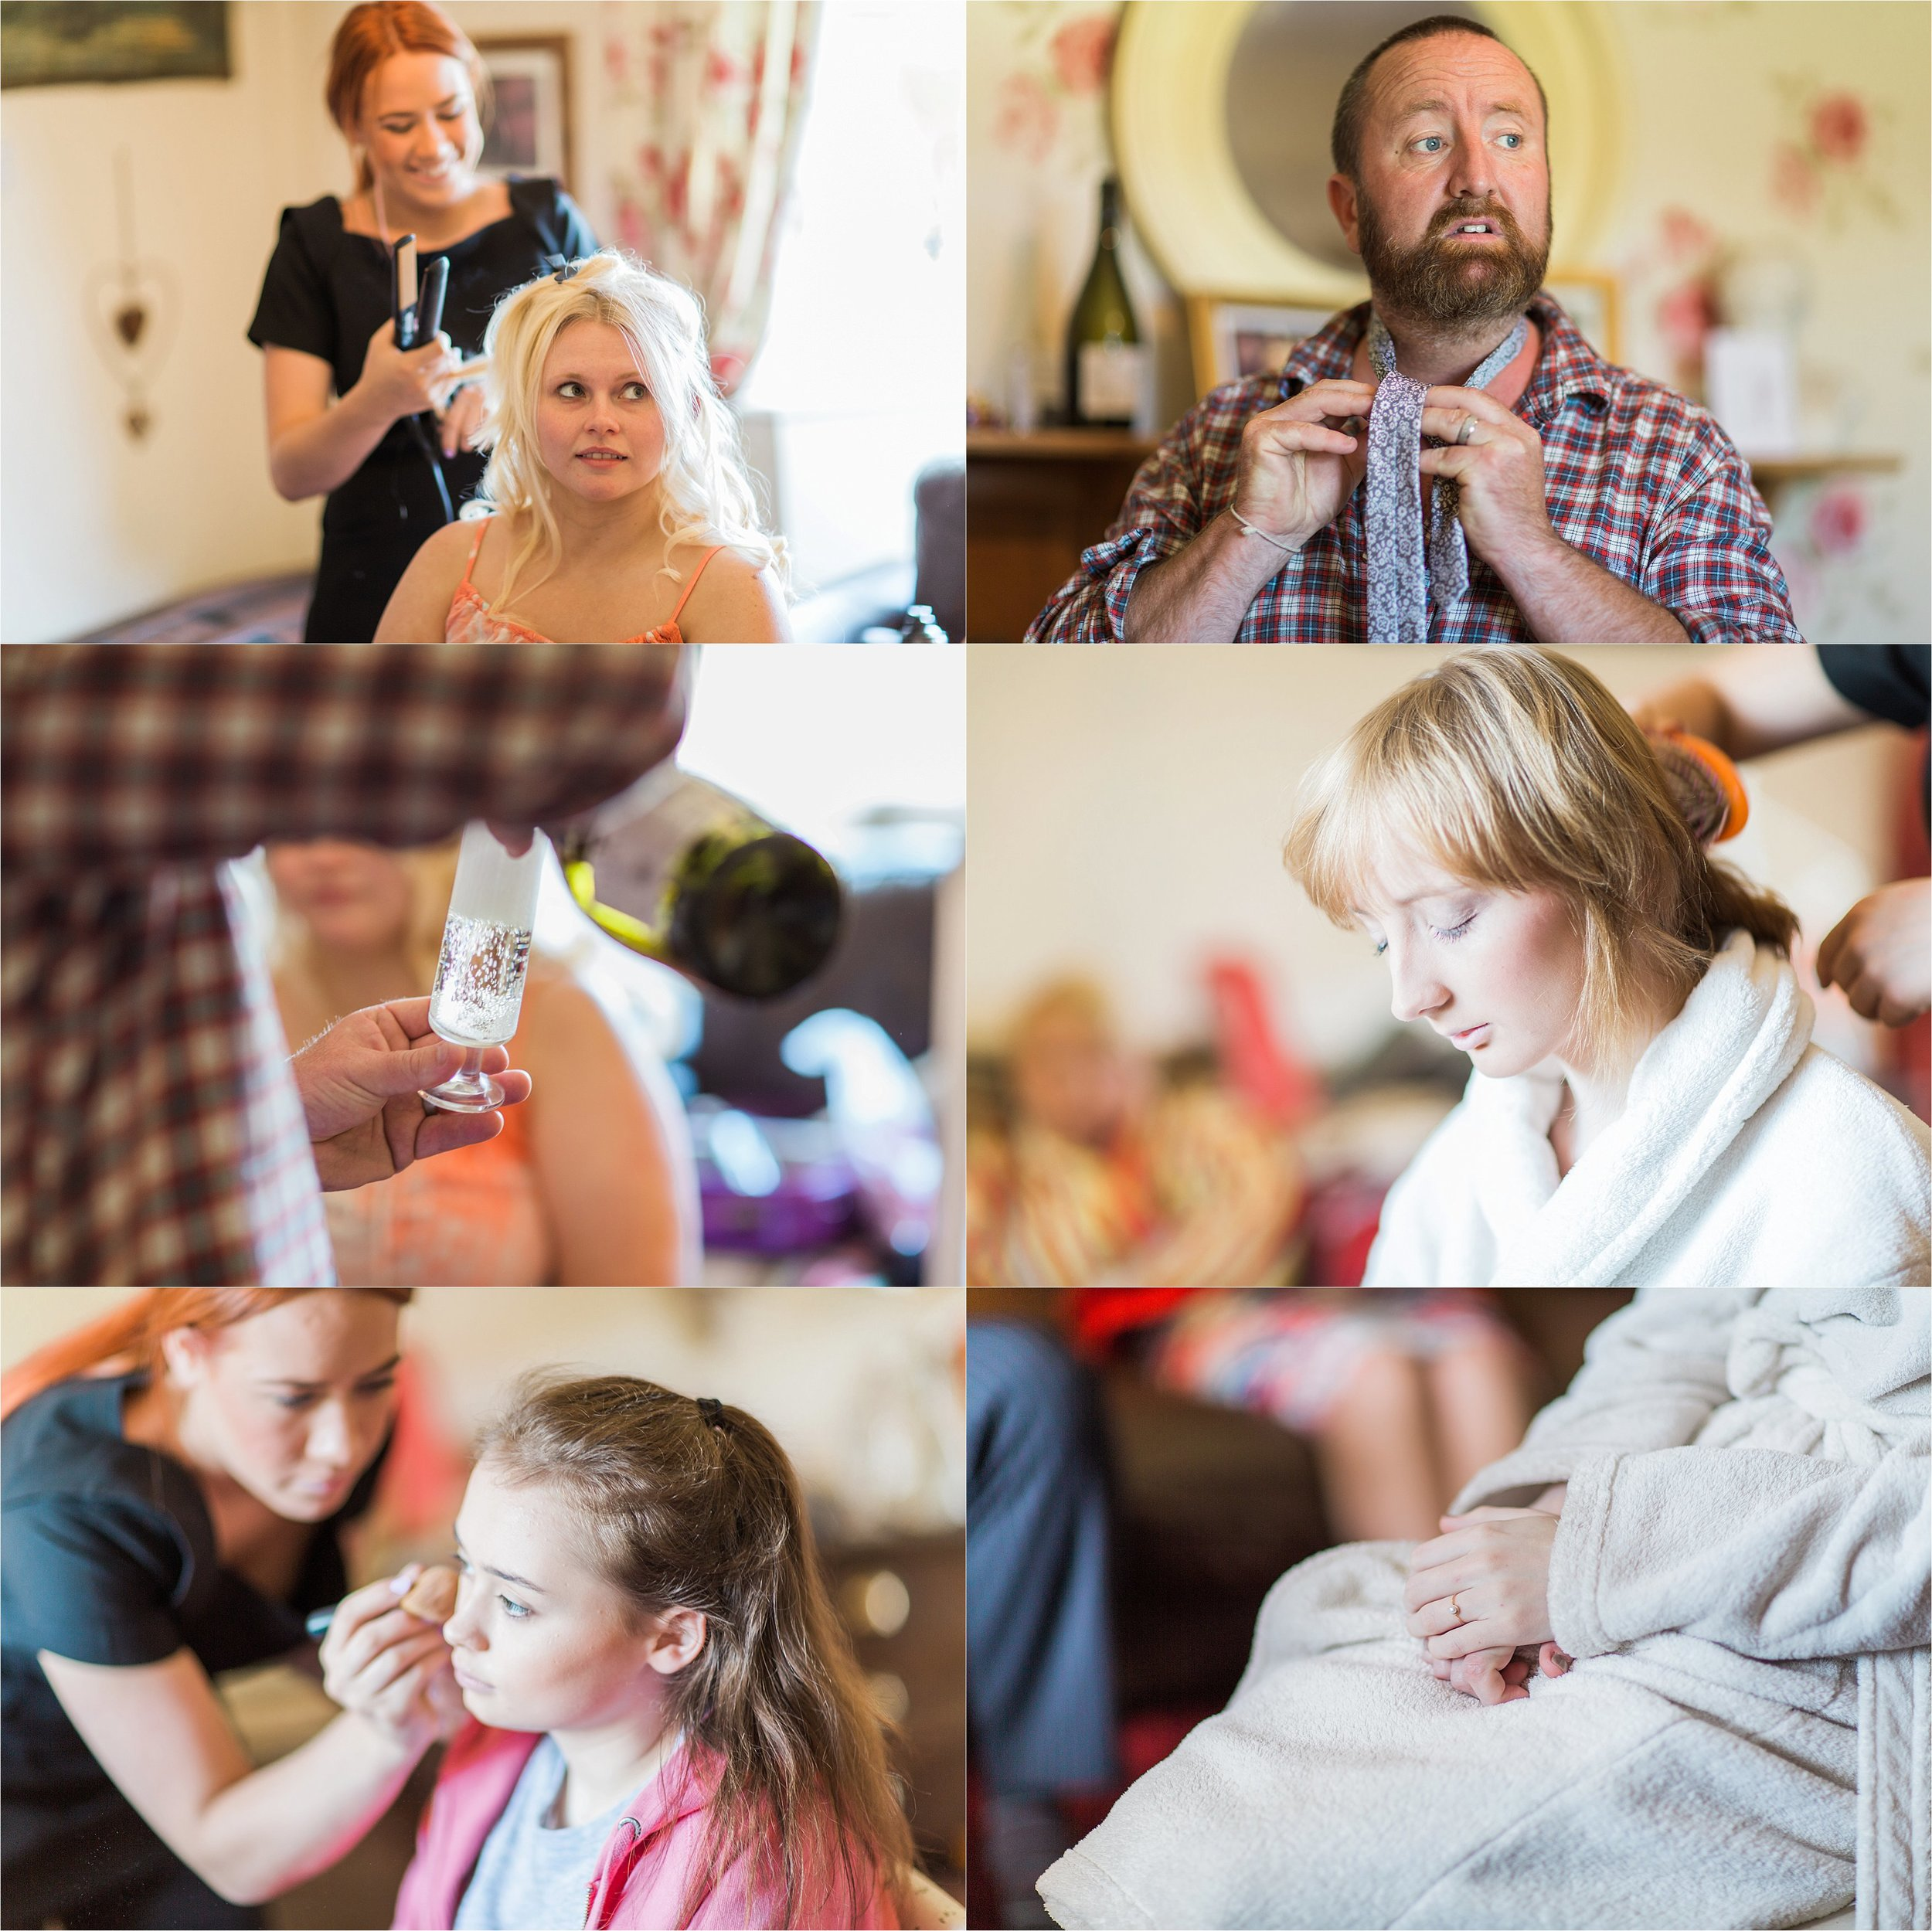 Possibly the most relaxed bridal party EVER. The bridal preparations went beautifully.